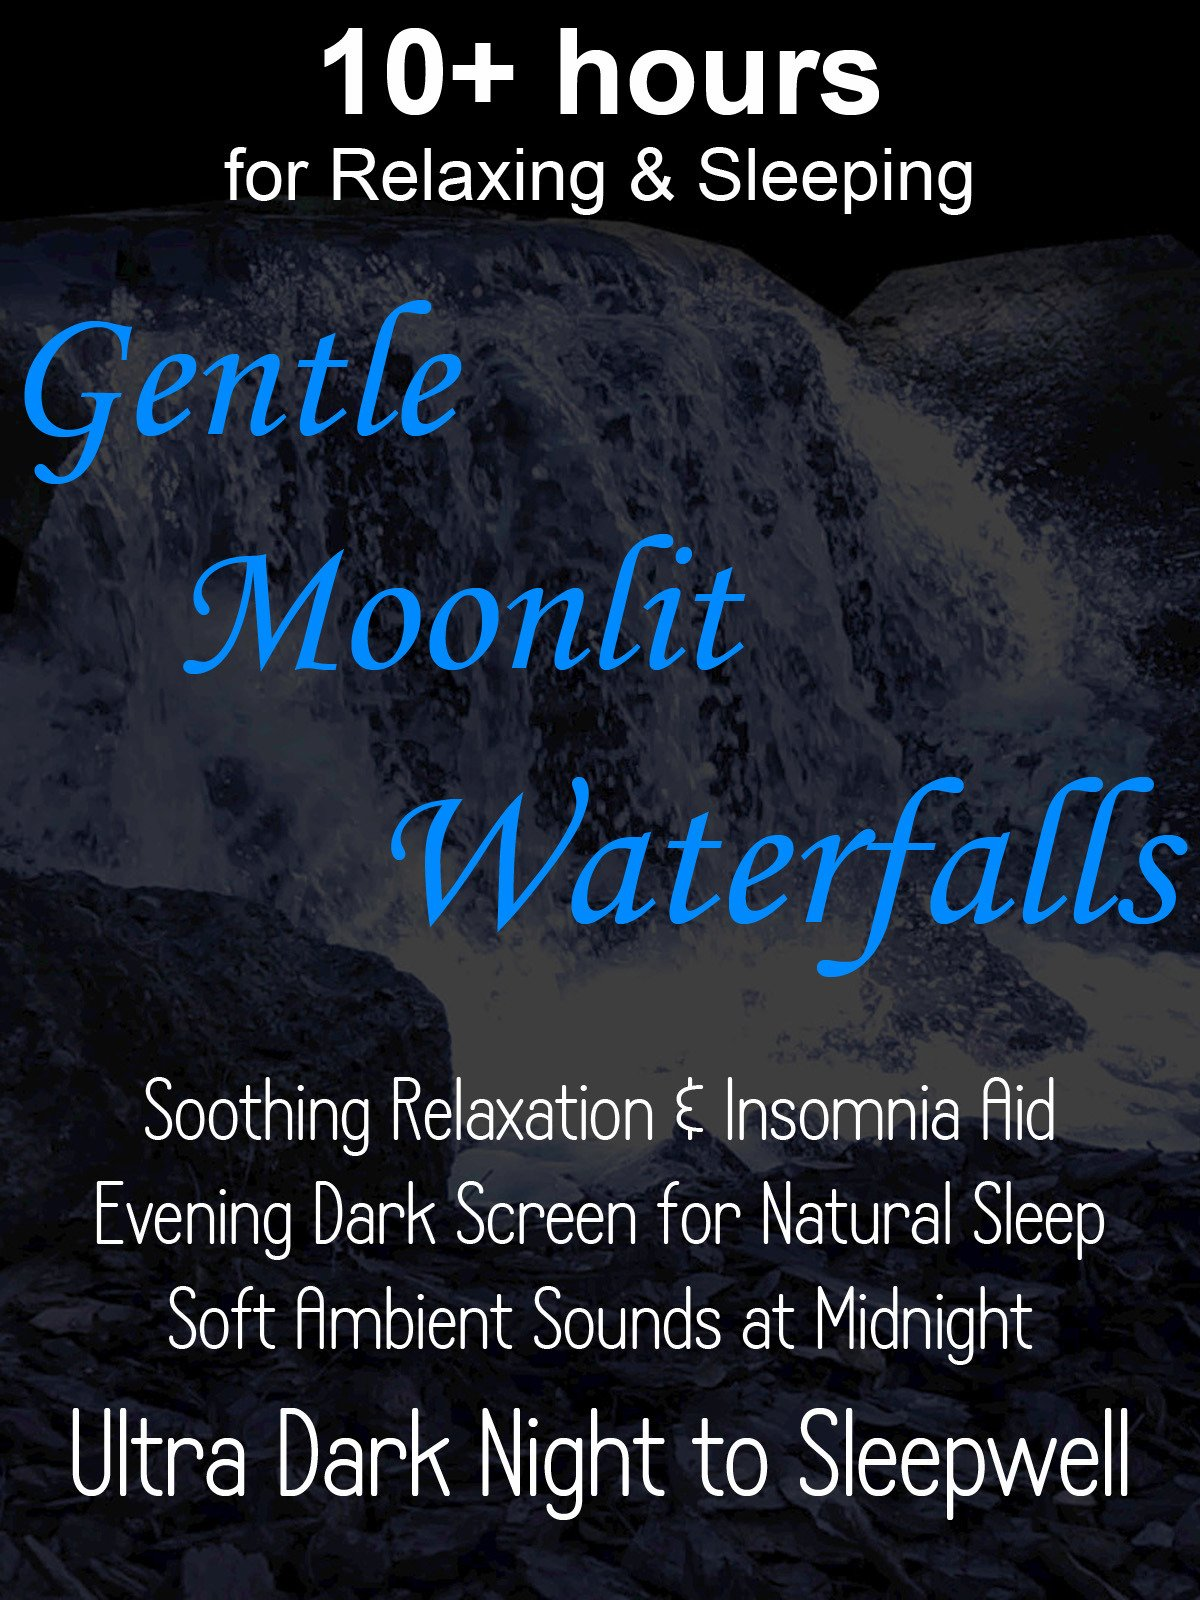 10+ hours for Relaxing & Sleeping Gentle Moonlit Waterfalls Soothing Relaxation & Insomnia Aid Evening Dark Screen for Natural Sleep Soft Ambient Sounds at Midnight Ultra Dark Night to Sleep Well